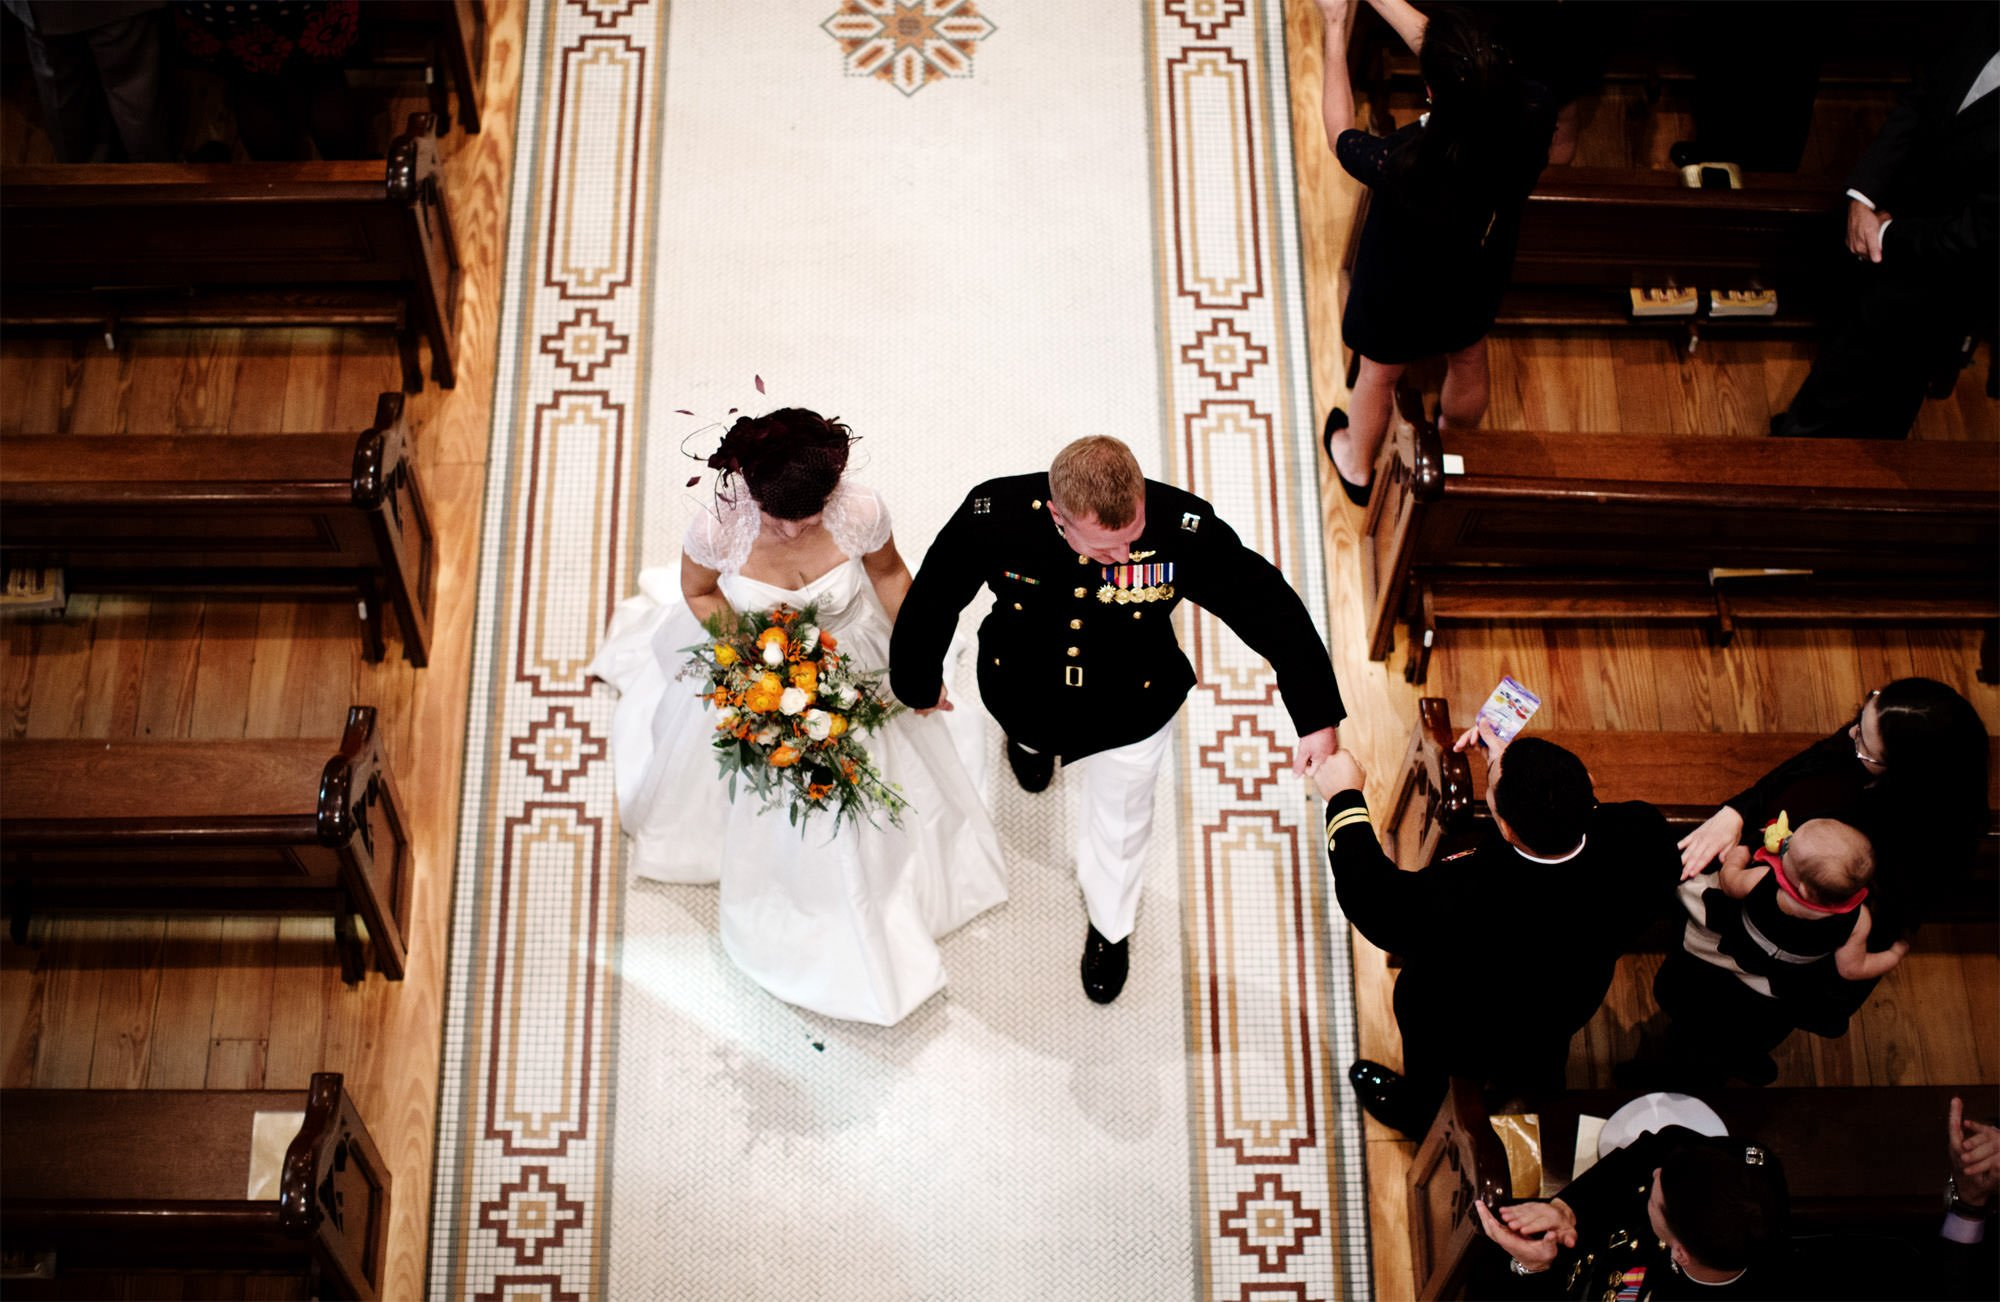 The bride and groom walk down the aisle following their wedding ceremony at St. Mary's Catholic Church.